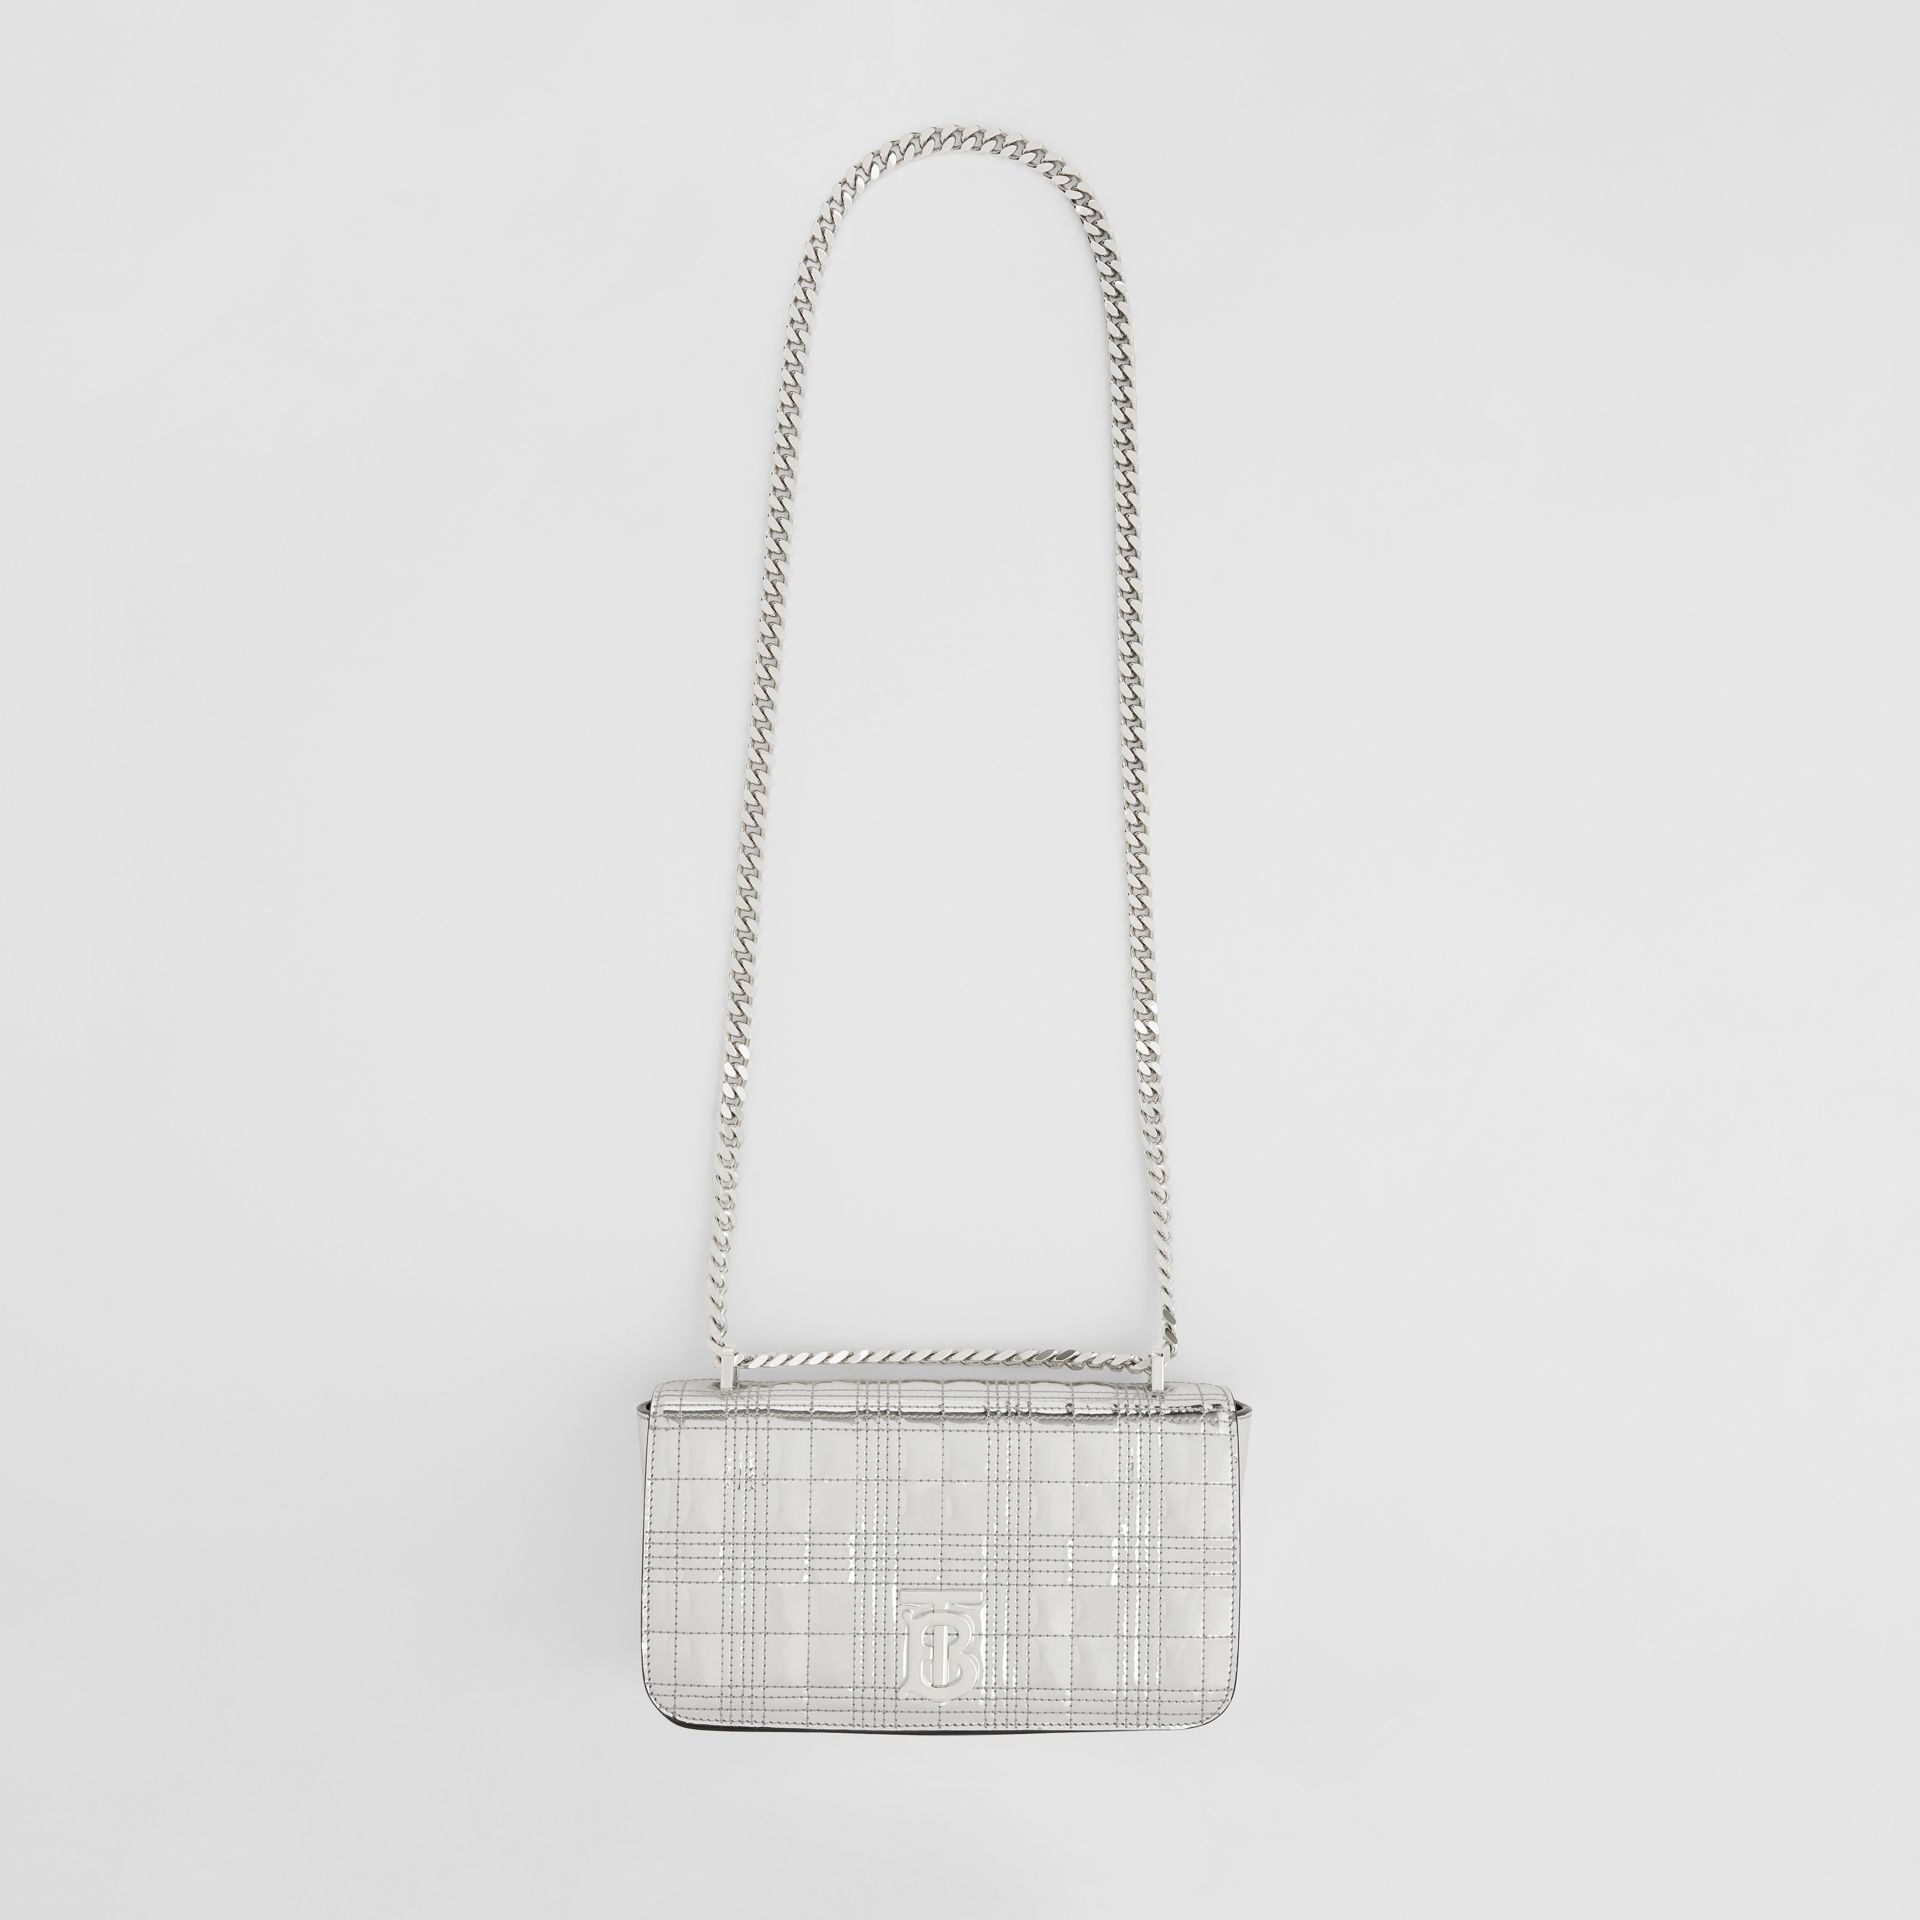 Small Quilted Metallic Leather Lola Bag in Silver - Women | Burberry - gallery image 2